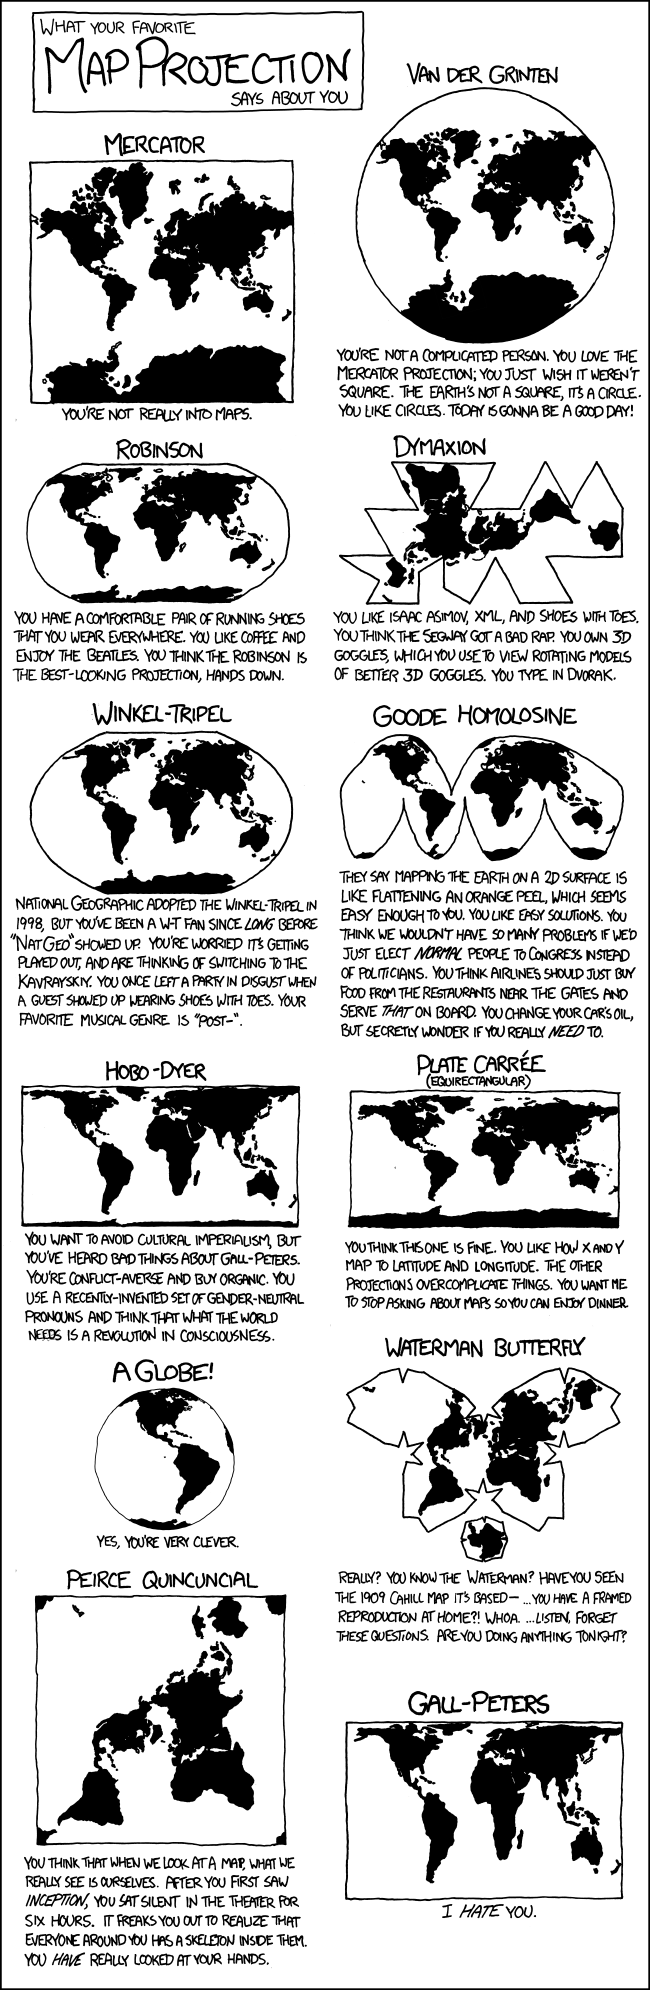 'What your favourite map project says about you.' Various maps comically explained. Includes: Mercator, Van der Grinten Robinson, Dymaxion, Winkel-Tripel, Goode Homolosine, Hobo-Dyer, Plate Caree, globe, Waterman Butterfly, Pierce Qunicuncial, and Gall-Peters